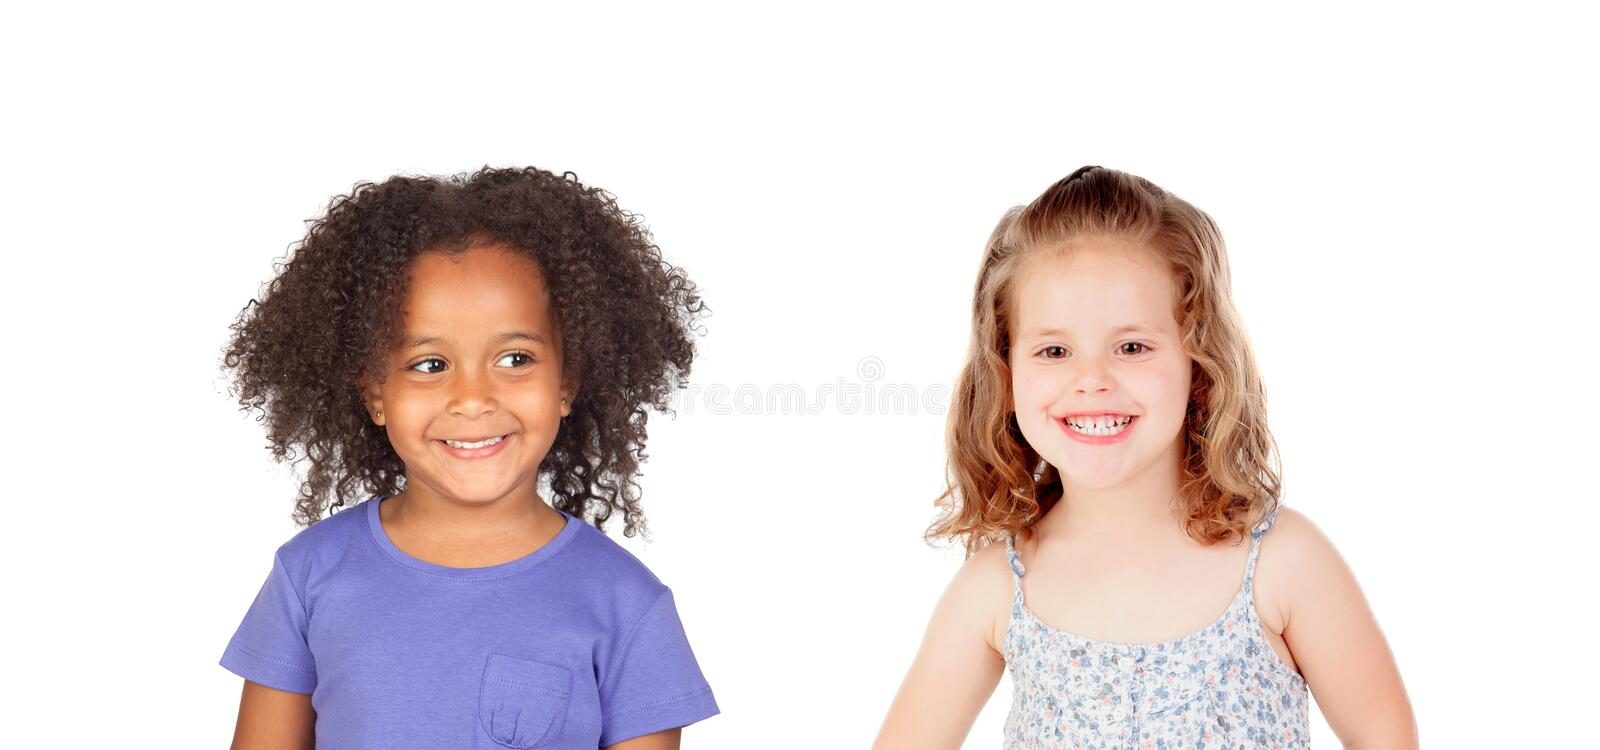 Two funny children laughing royalty free stock images